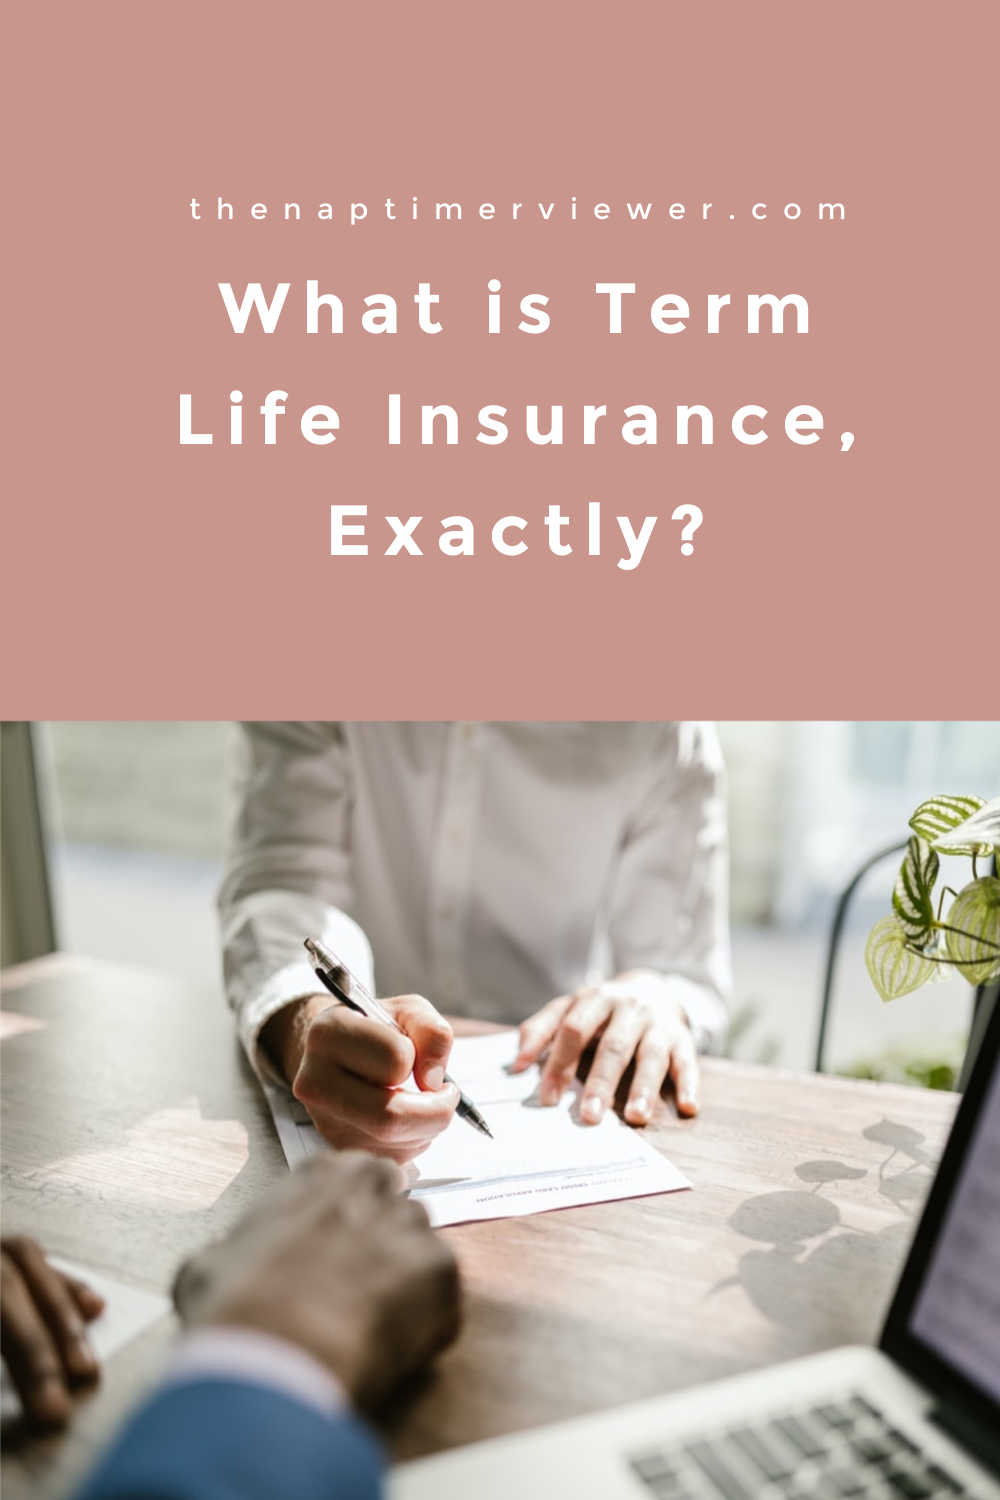 What is Term Life Insurance, Exactly?